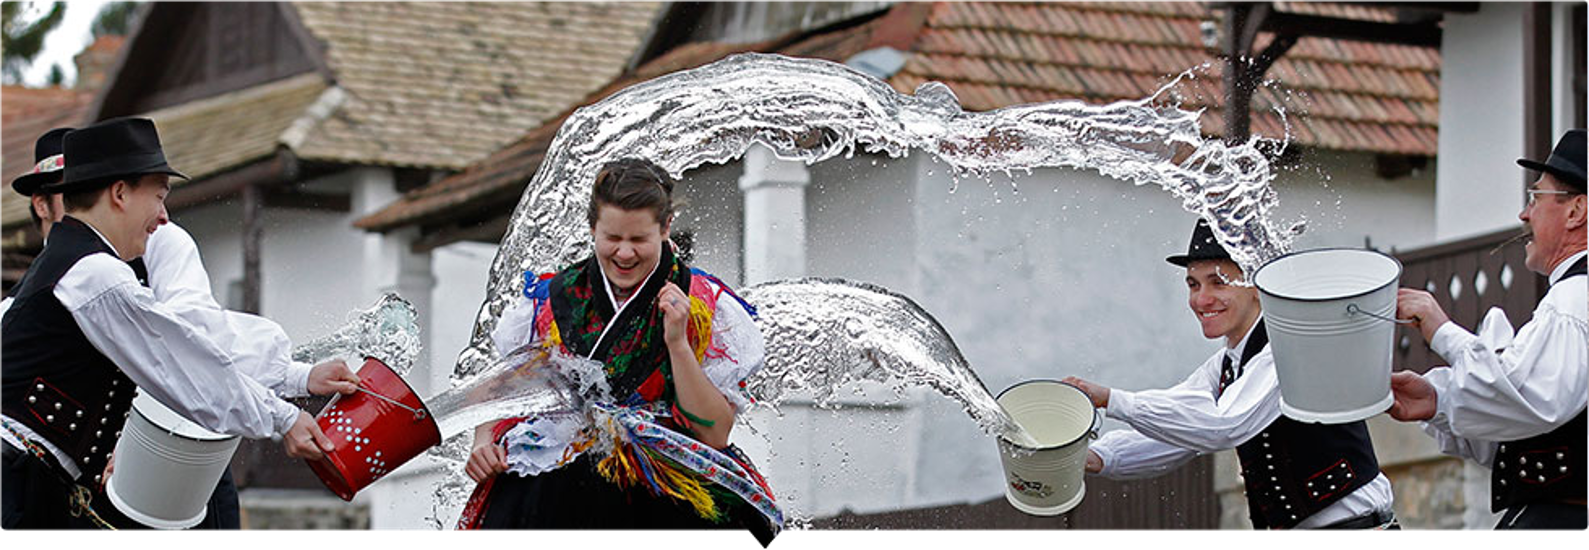 Easter Festival In Hollókő, 30 March - 2 April